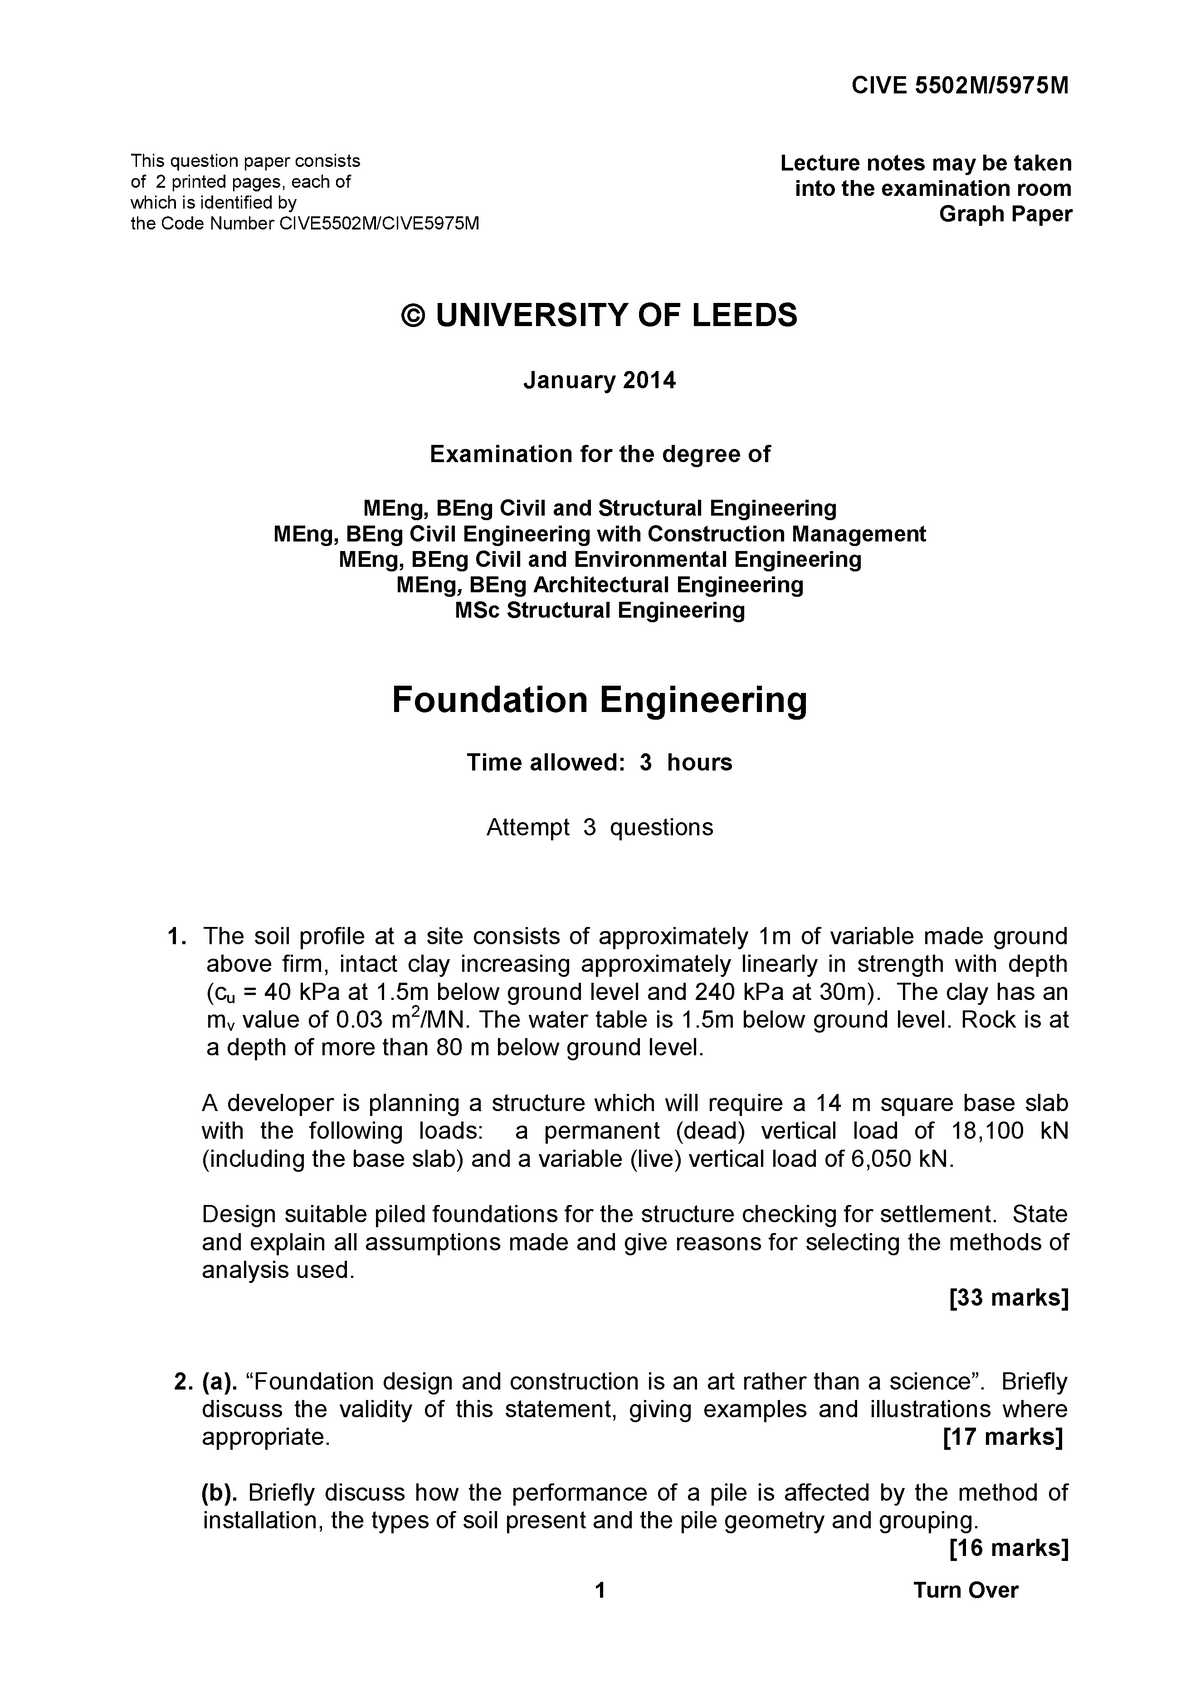 Exam 2014 - CIVE5502M: Foundation Engineering - Meng - StuDocu